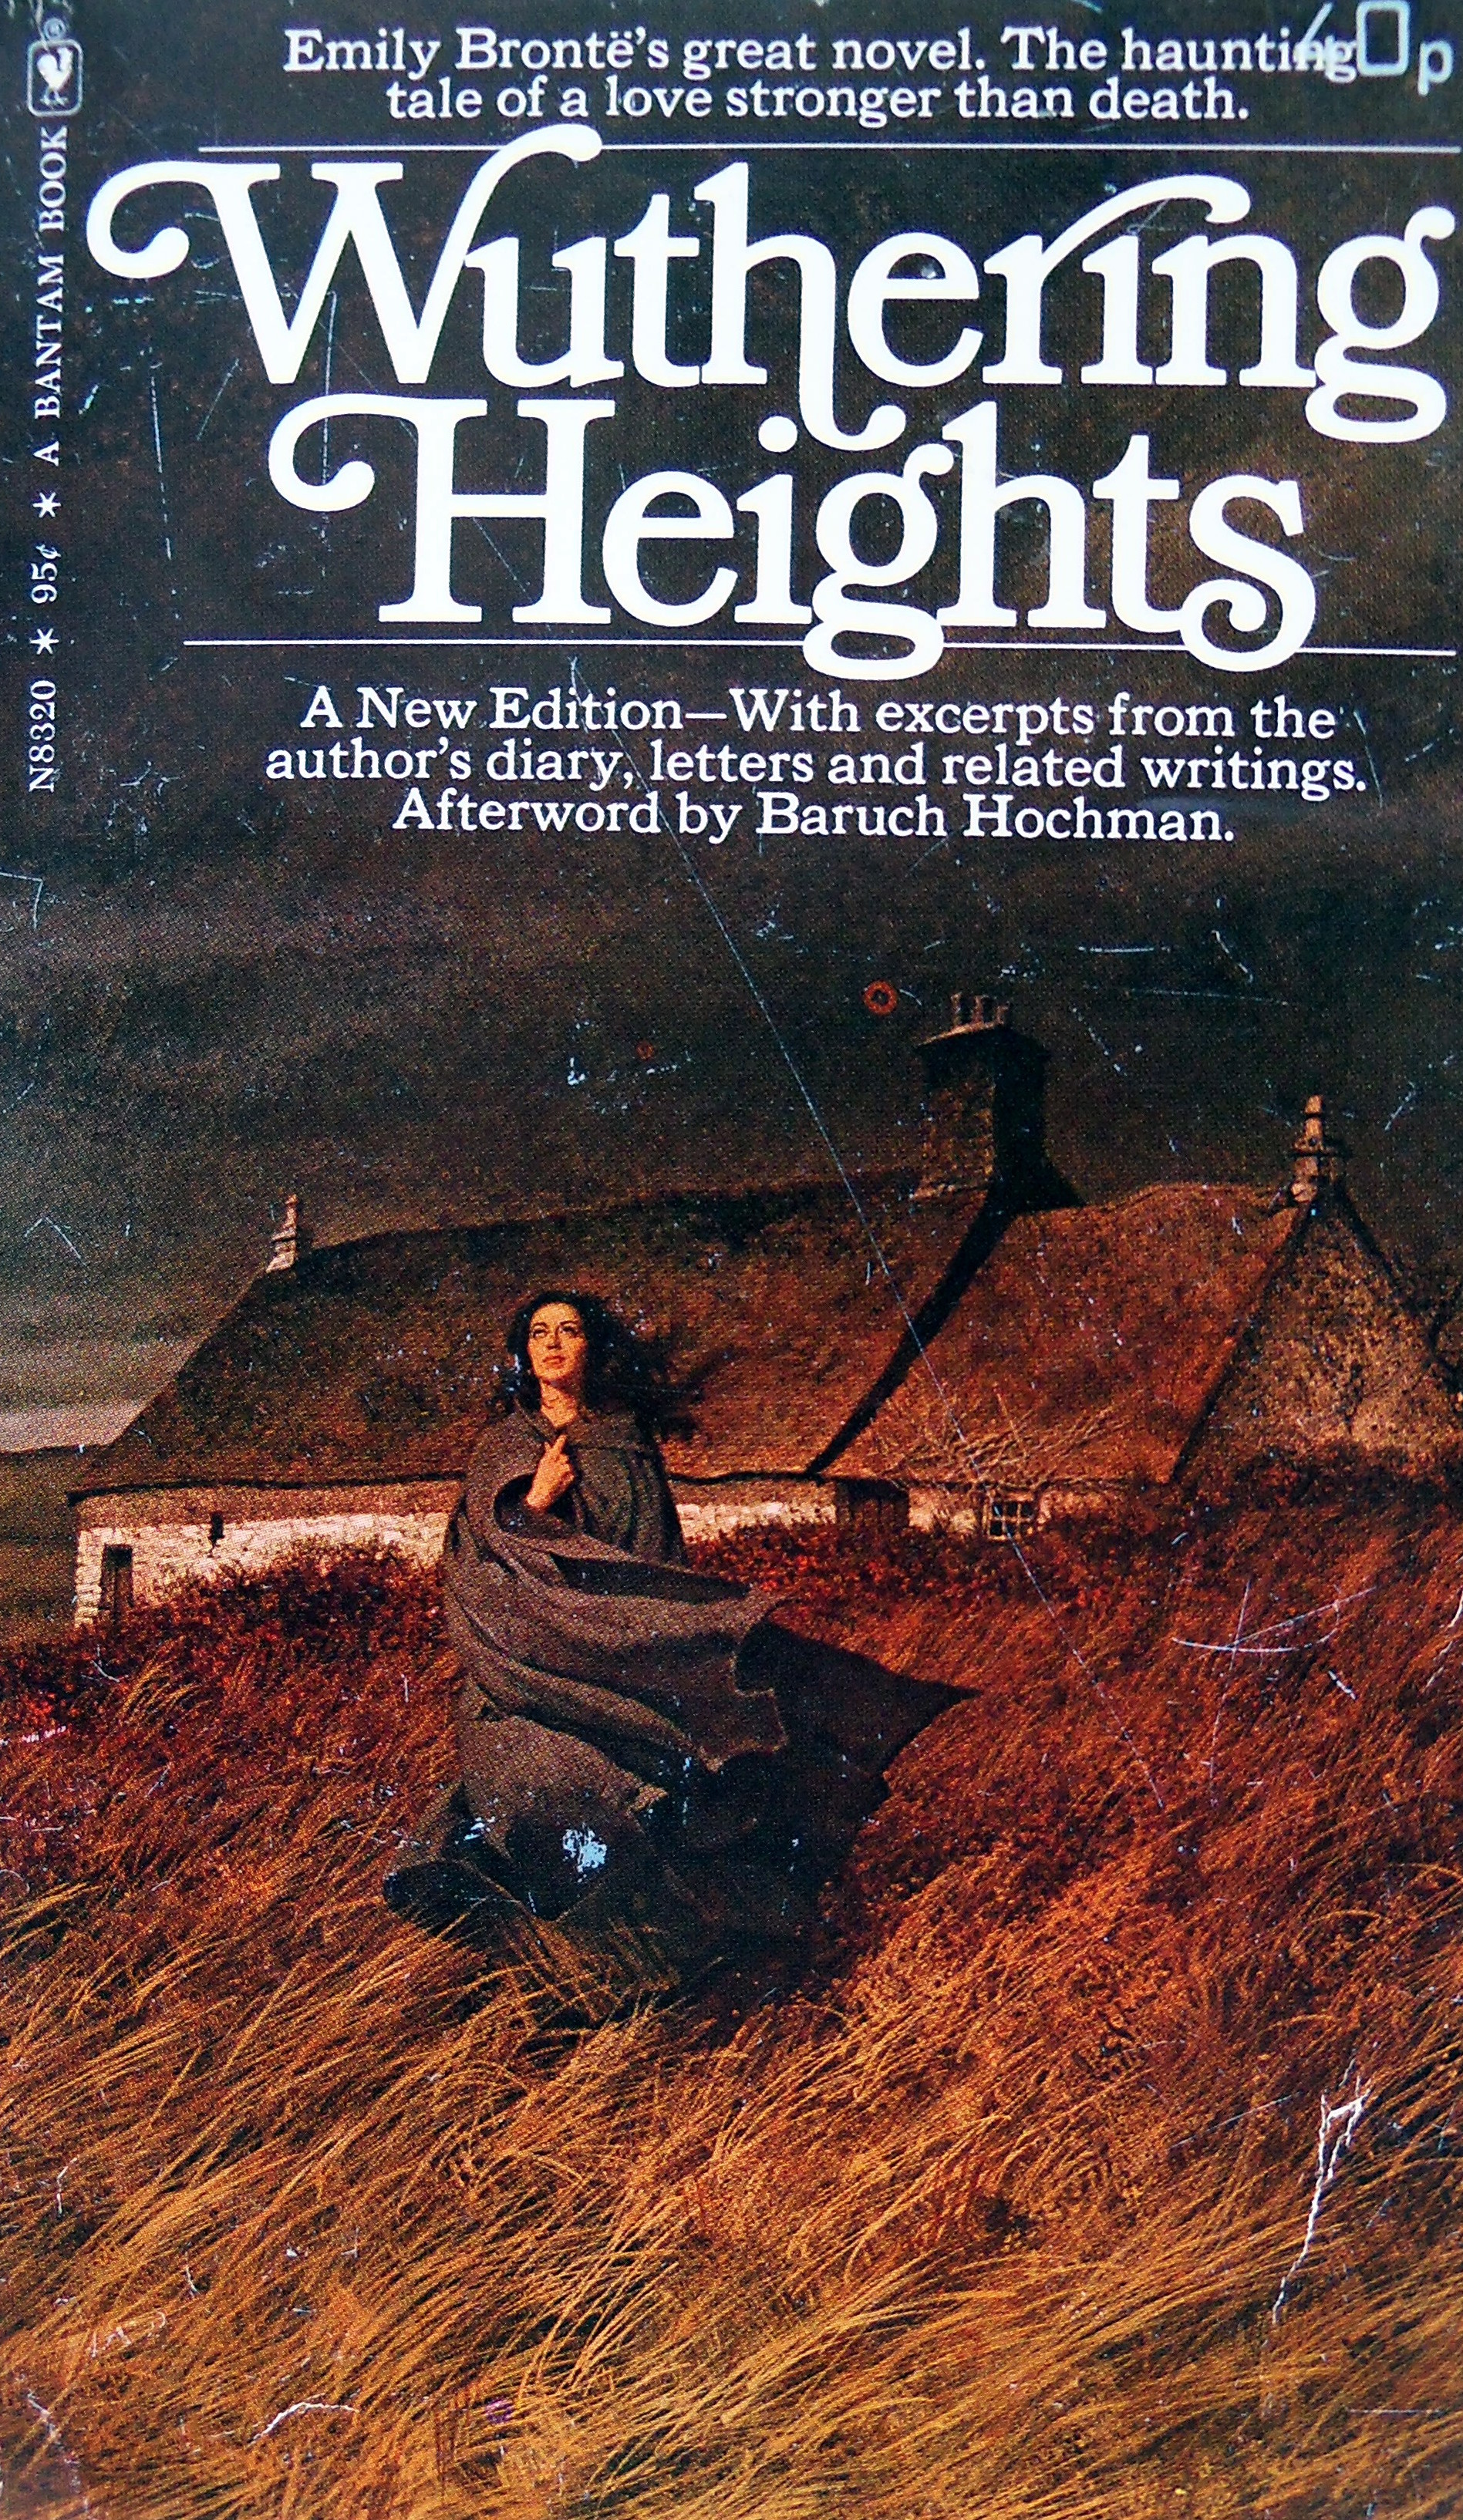 a summary of wuthering heights by emily bronte The above image of emily brontë - endlessly reproduced - is less a portrait, more an icon intense, fierce, inward, solitary, elusive and unknowable: the young author of wuthering heights in.